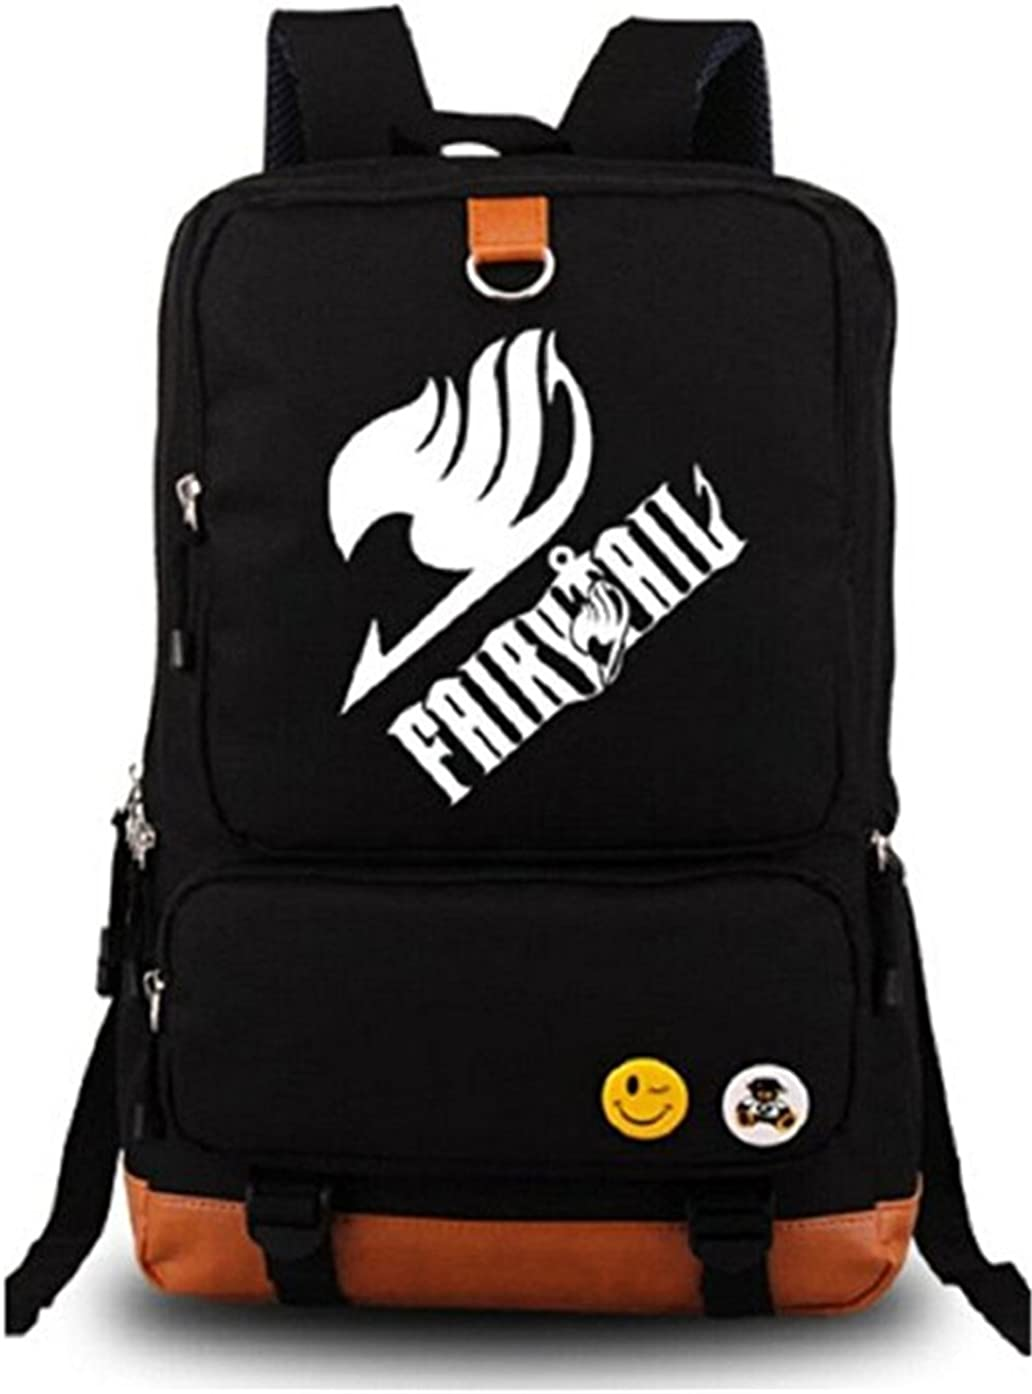 Gumstyle Anime Fairy Tail Luminous Large Capacity School Bag Cosplay Backpack Black and Blue